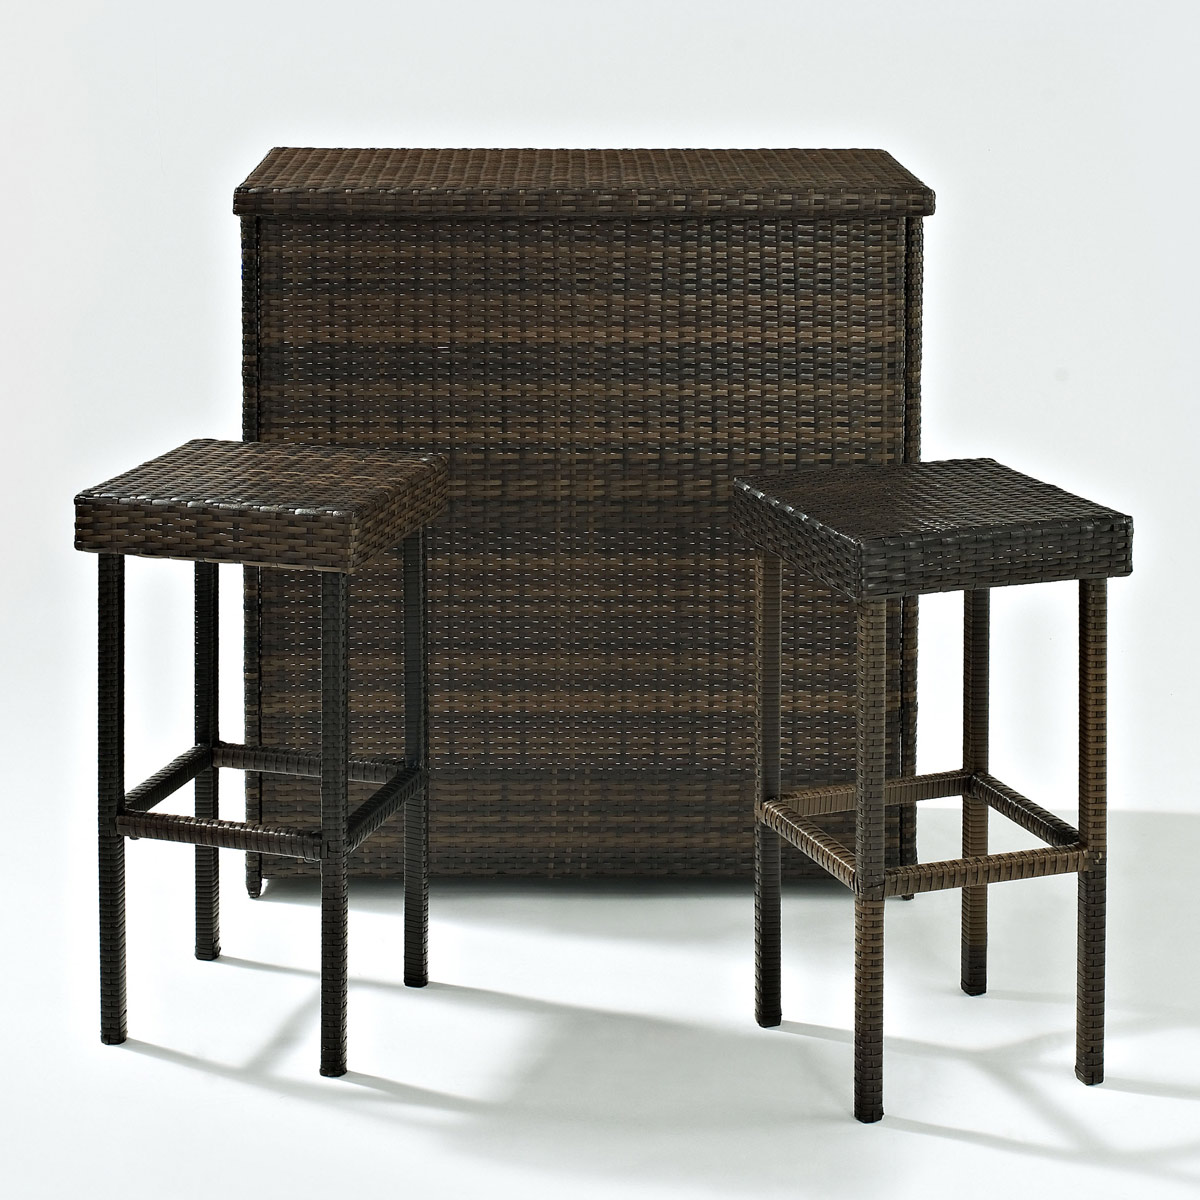 Crosley Palm Harbor 3 Piece Outdoor Wicker Bar Set Bar And Two Stools Ko70009br Free Shipping